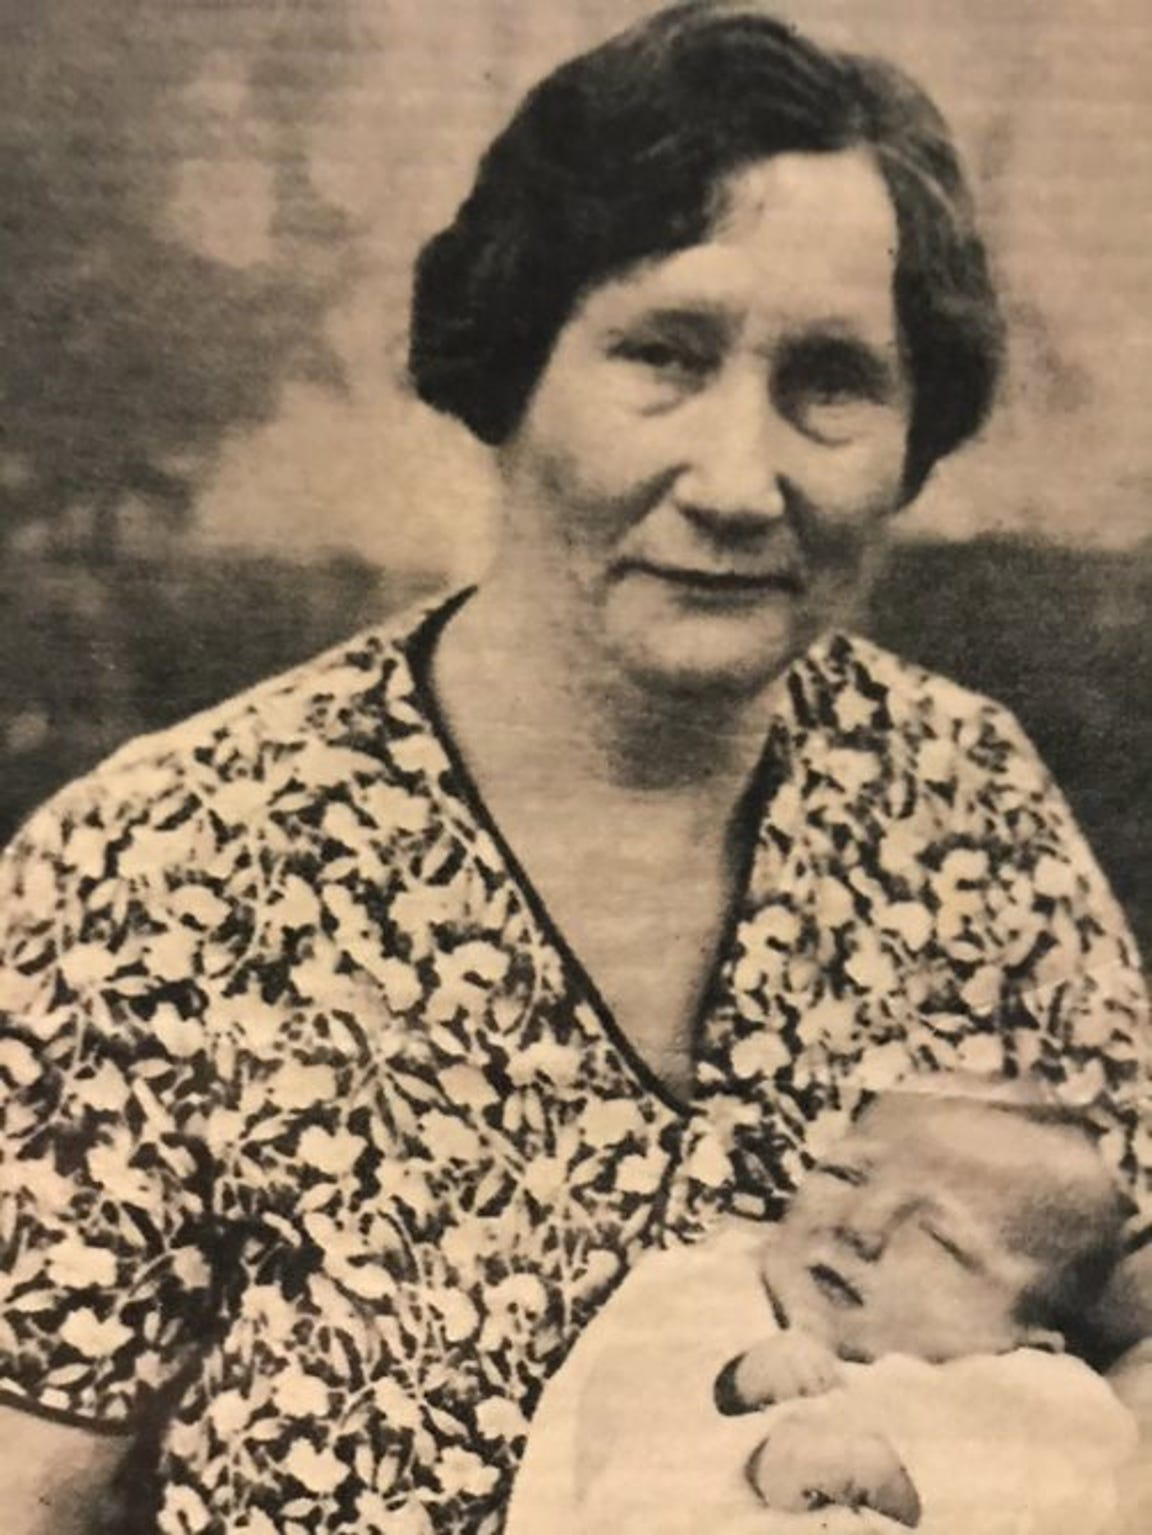 Helen Dana, the midwife who cared for the Hatbox Baby after she was discovered, pictured holding Sharon Elliott in 1931.